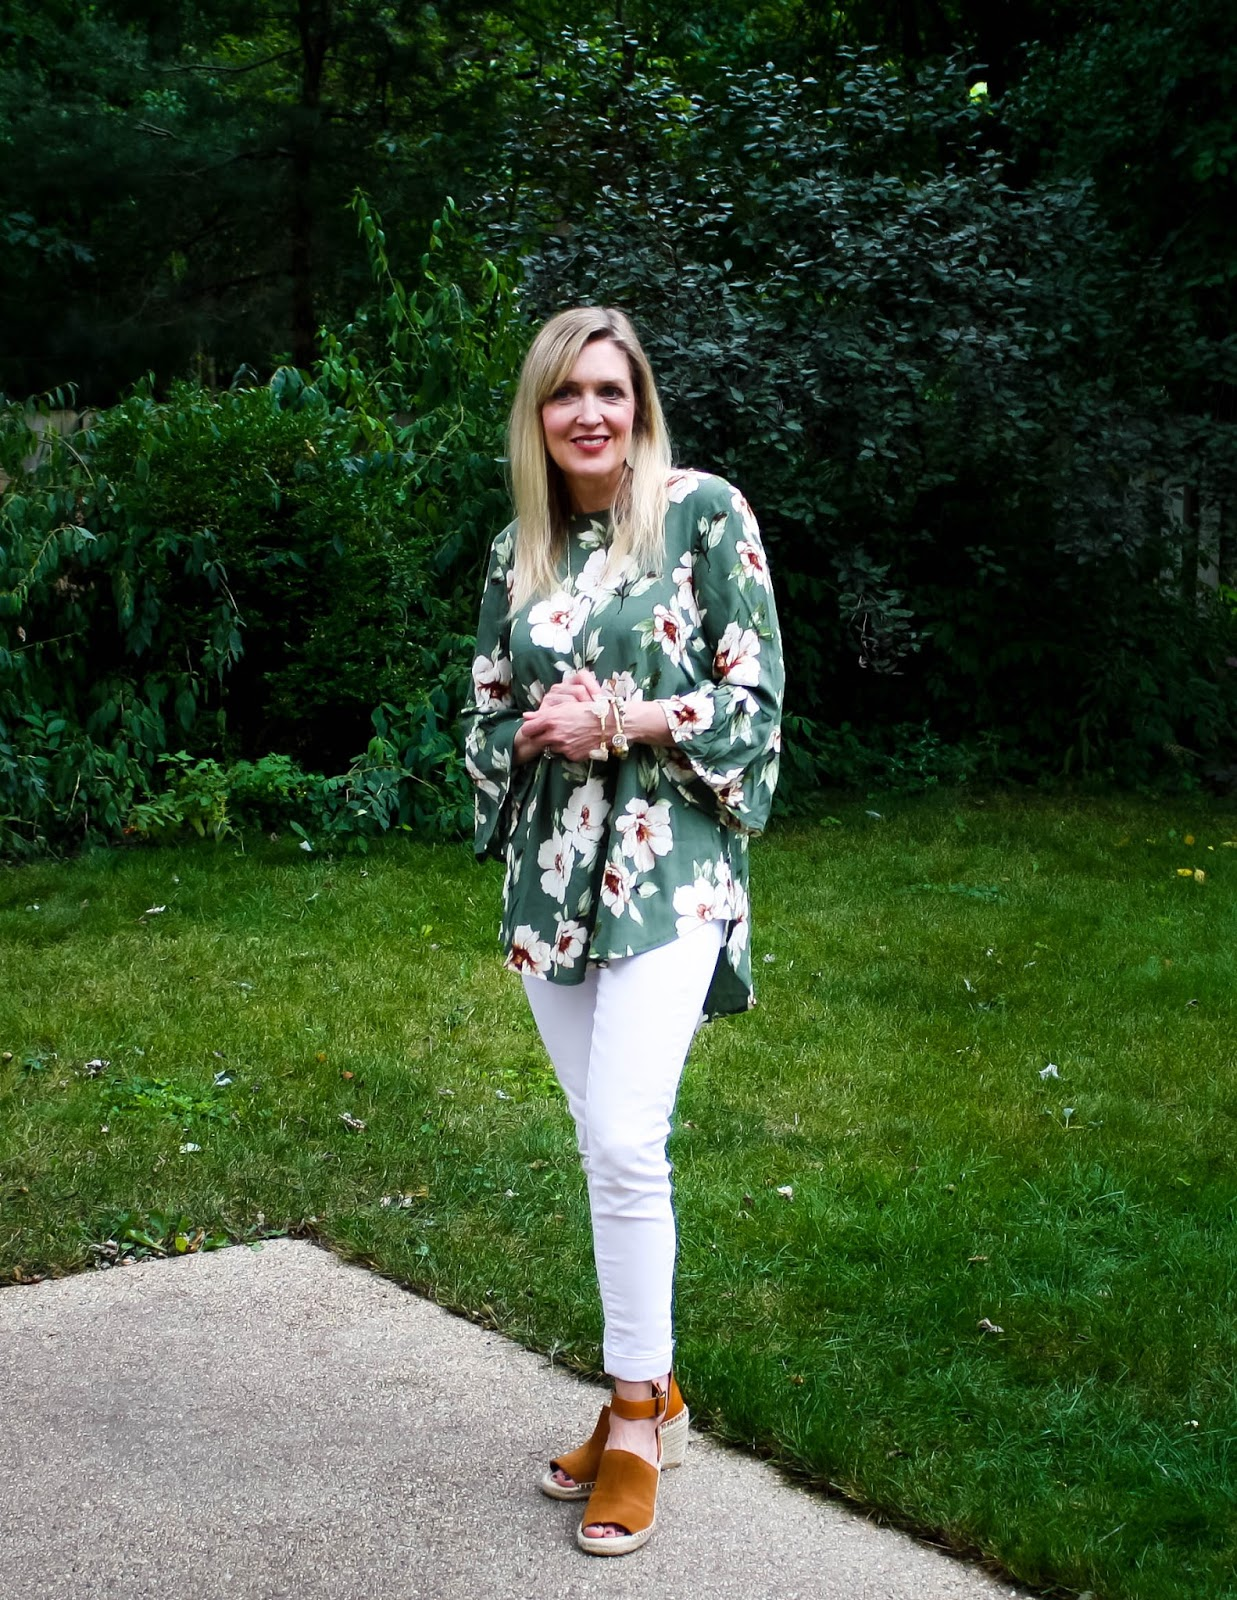 Olive Floral Tunic with Ruffle Sleeves and White Denim